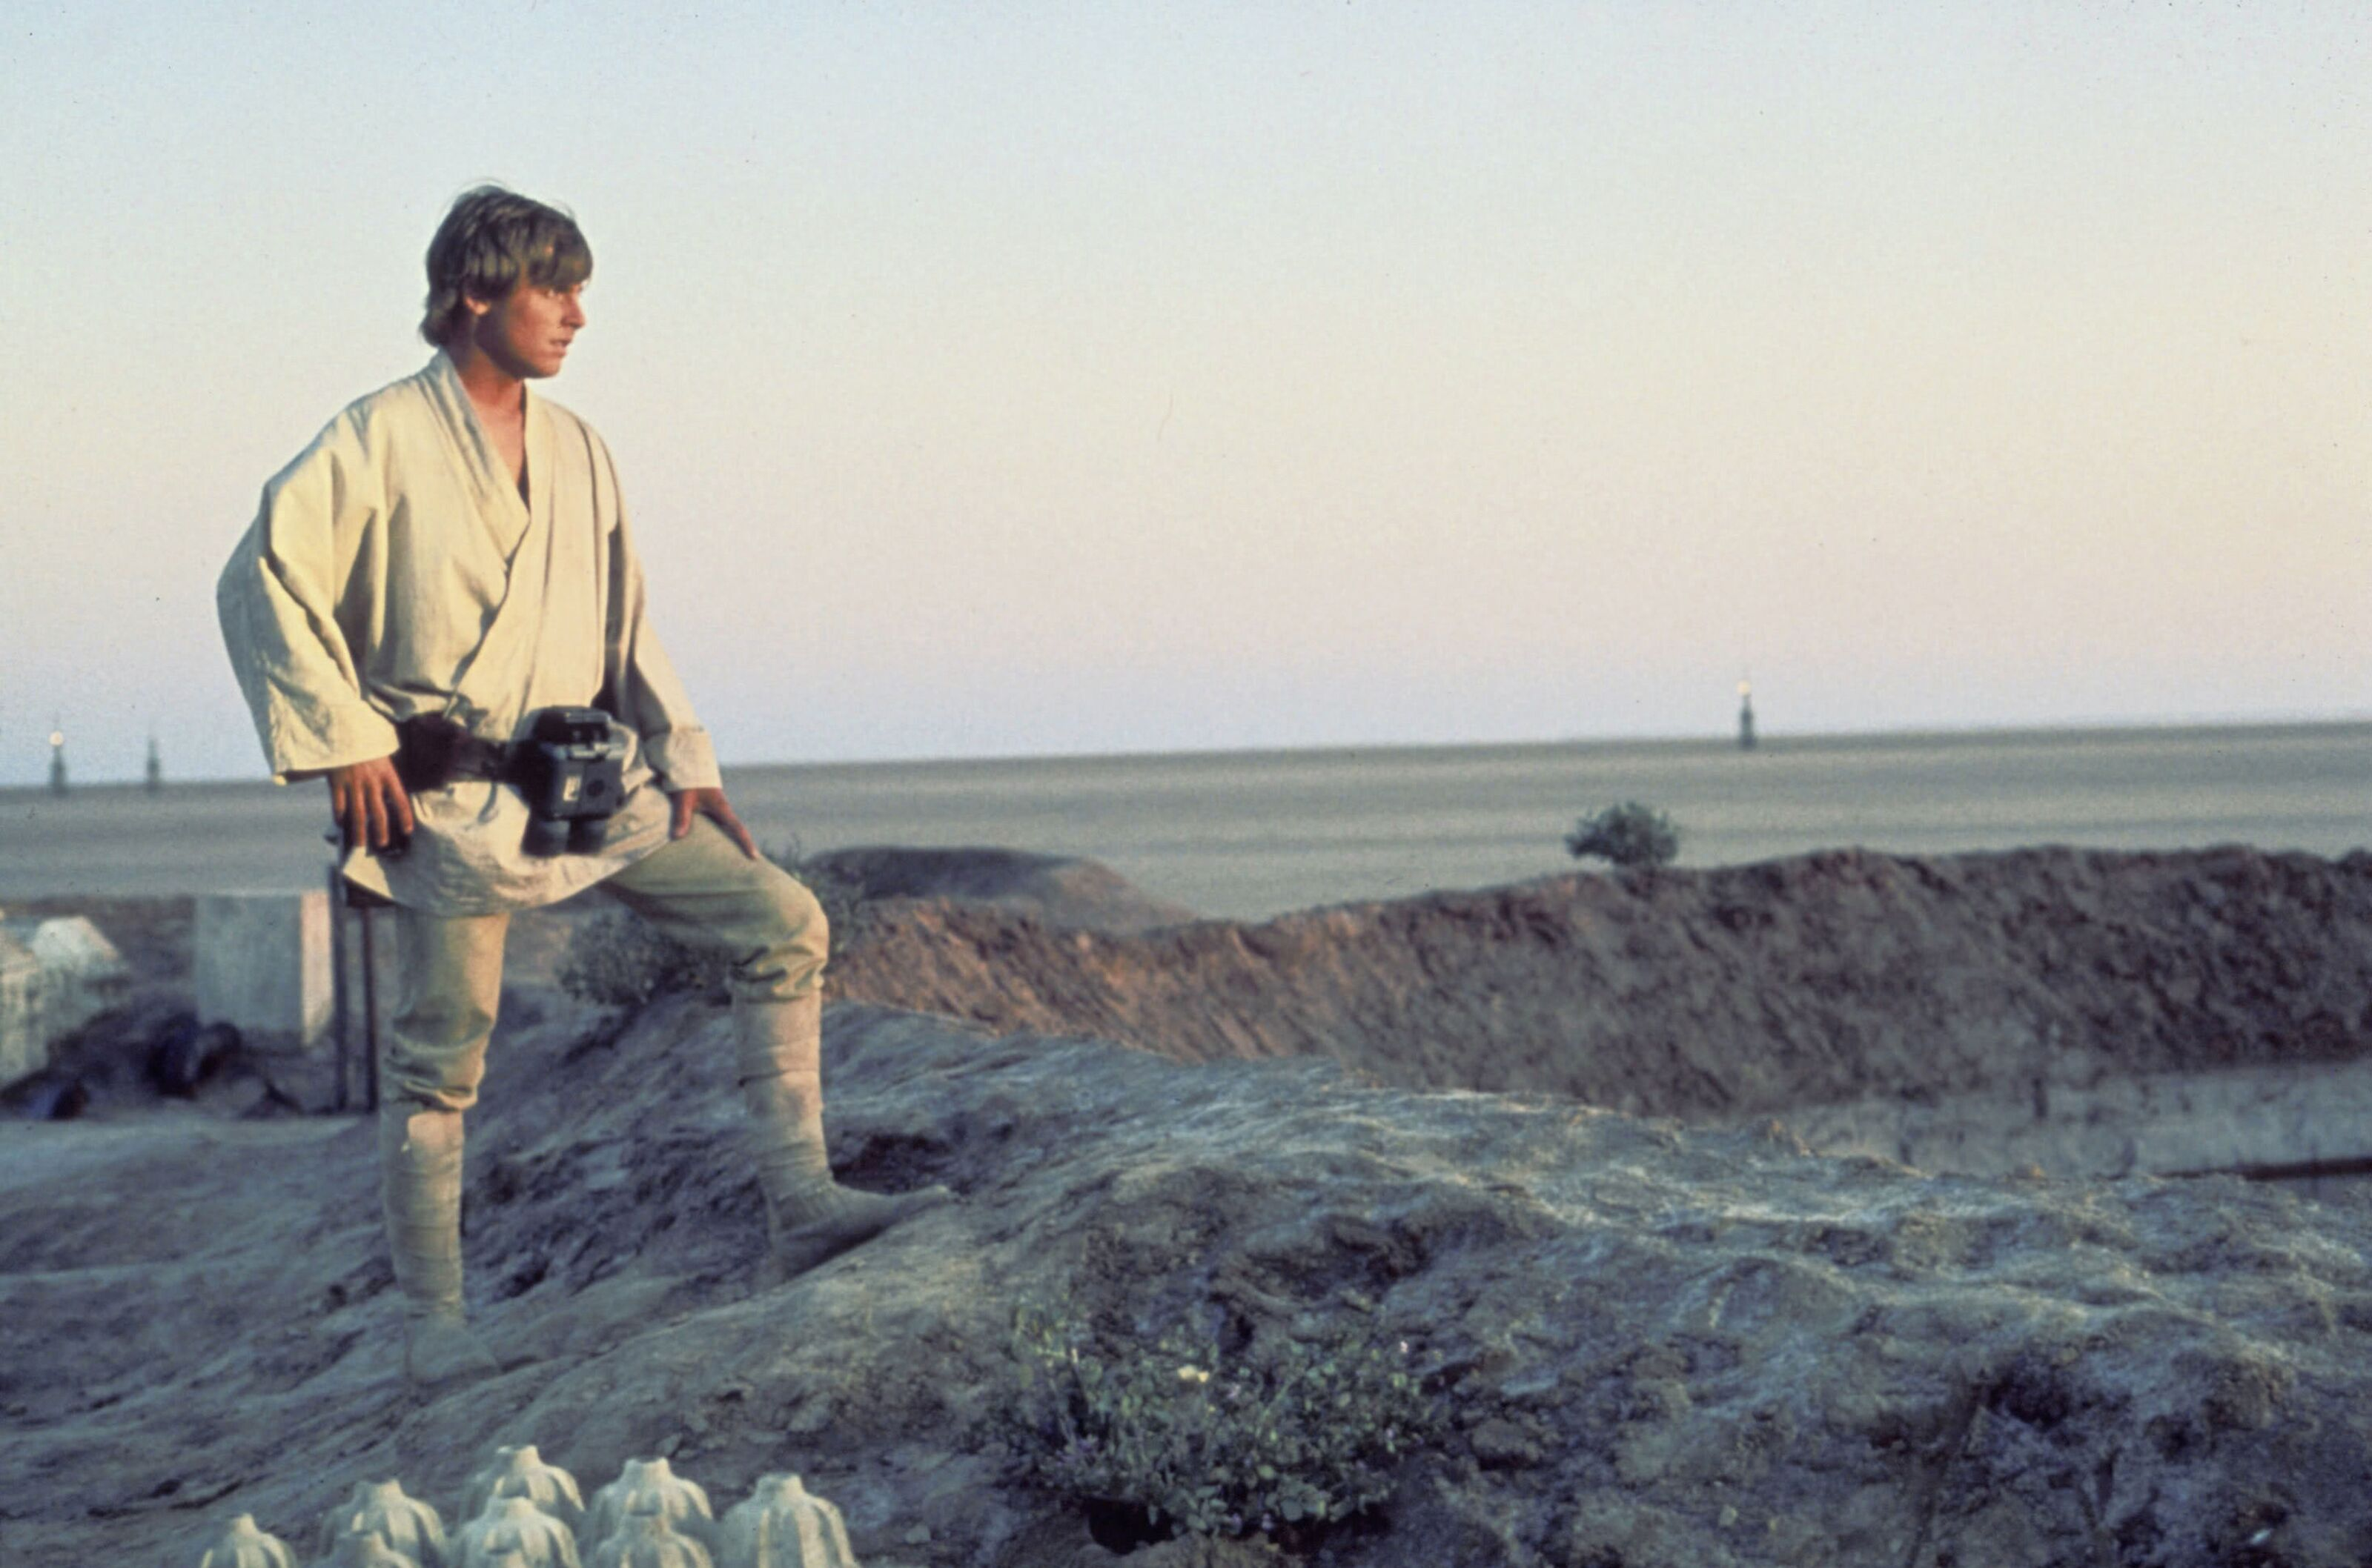 Pre-Skywalker trilogy could be ideal move for Star Wars franchise